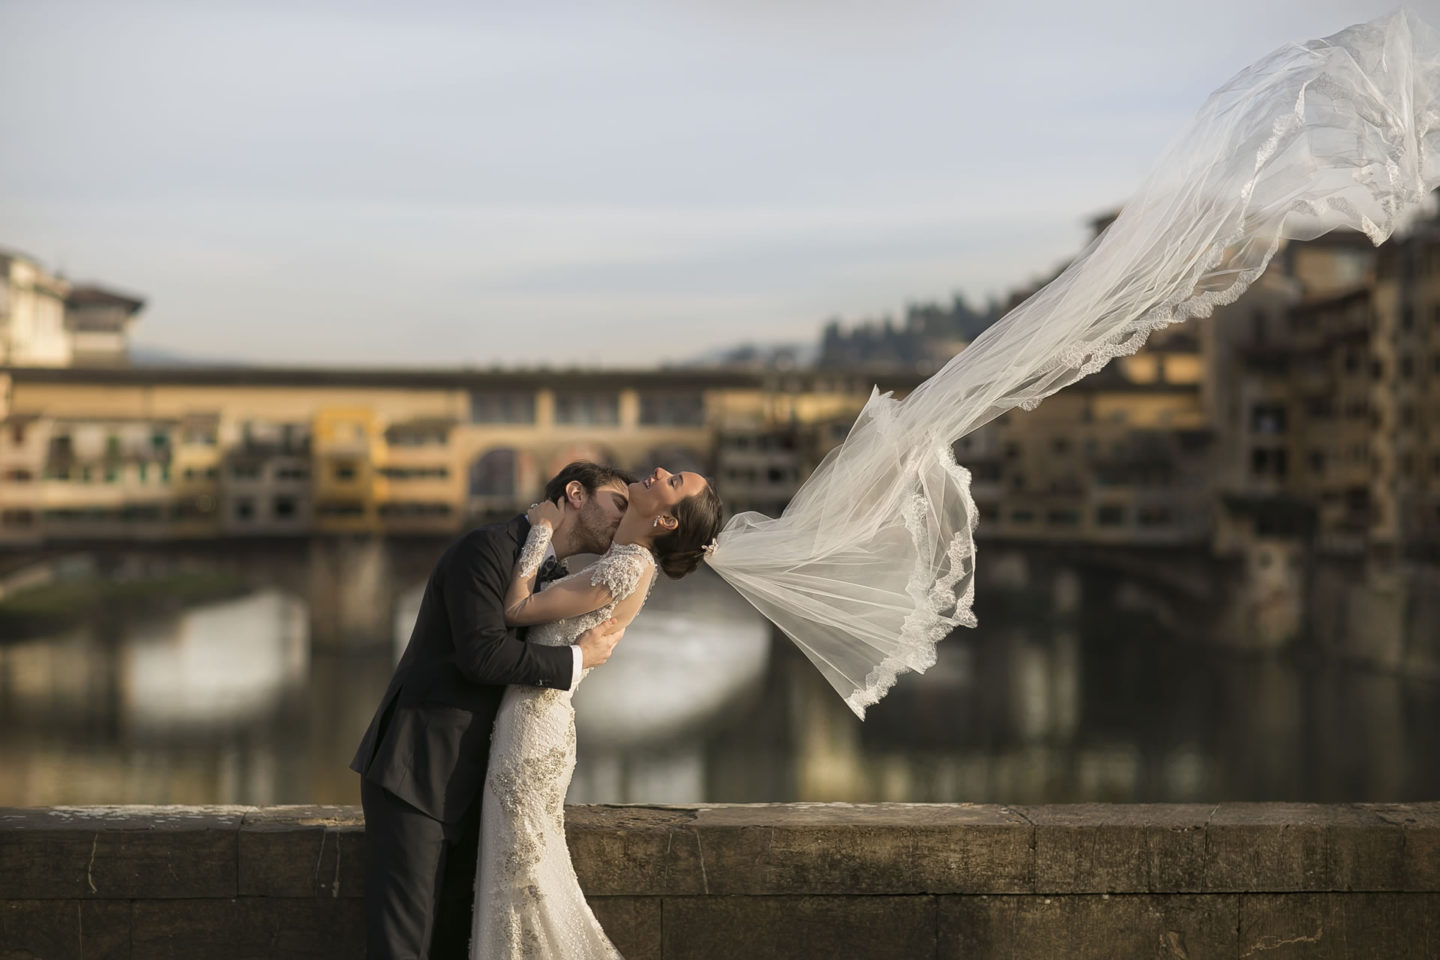 Soar :: Bride and groom. Couple :: David Bastianoni wedding photographer